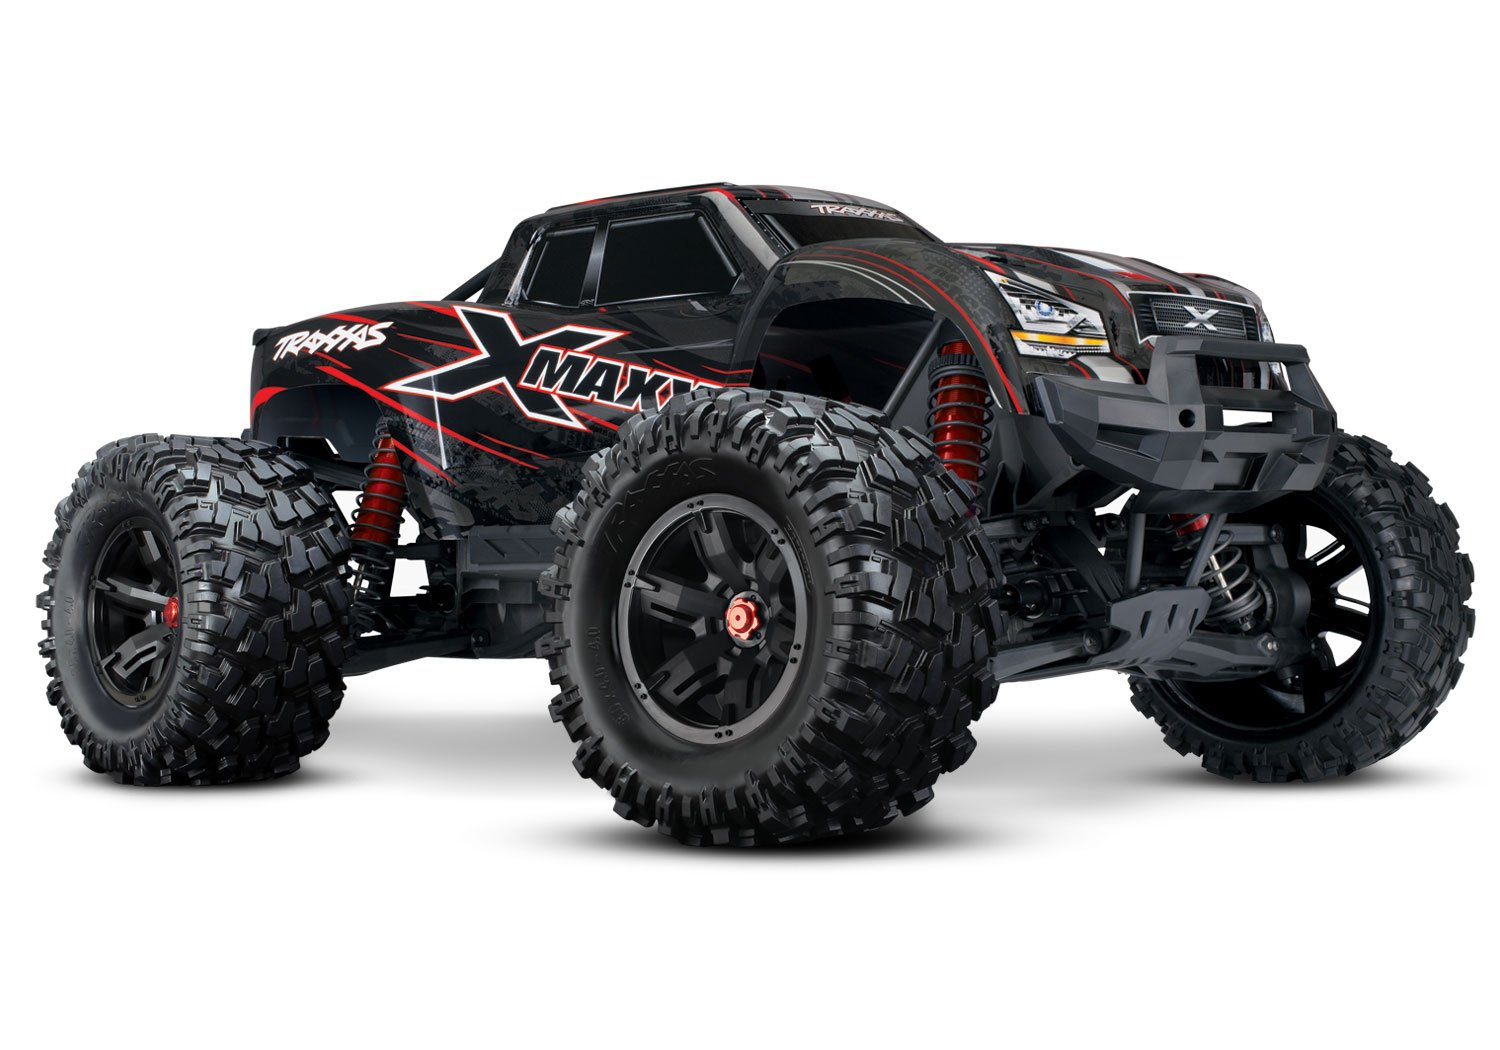 Traxxas 8S X-Maxx 4WD Brushless Electric Monster RTR Truck, Red